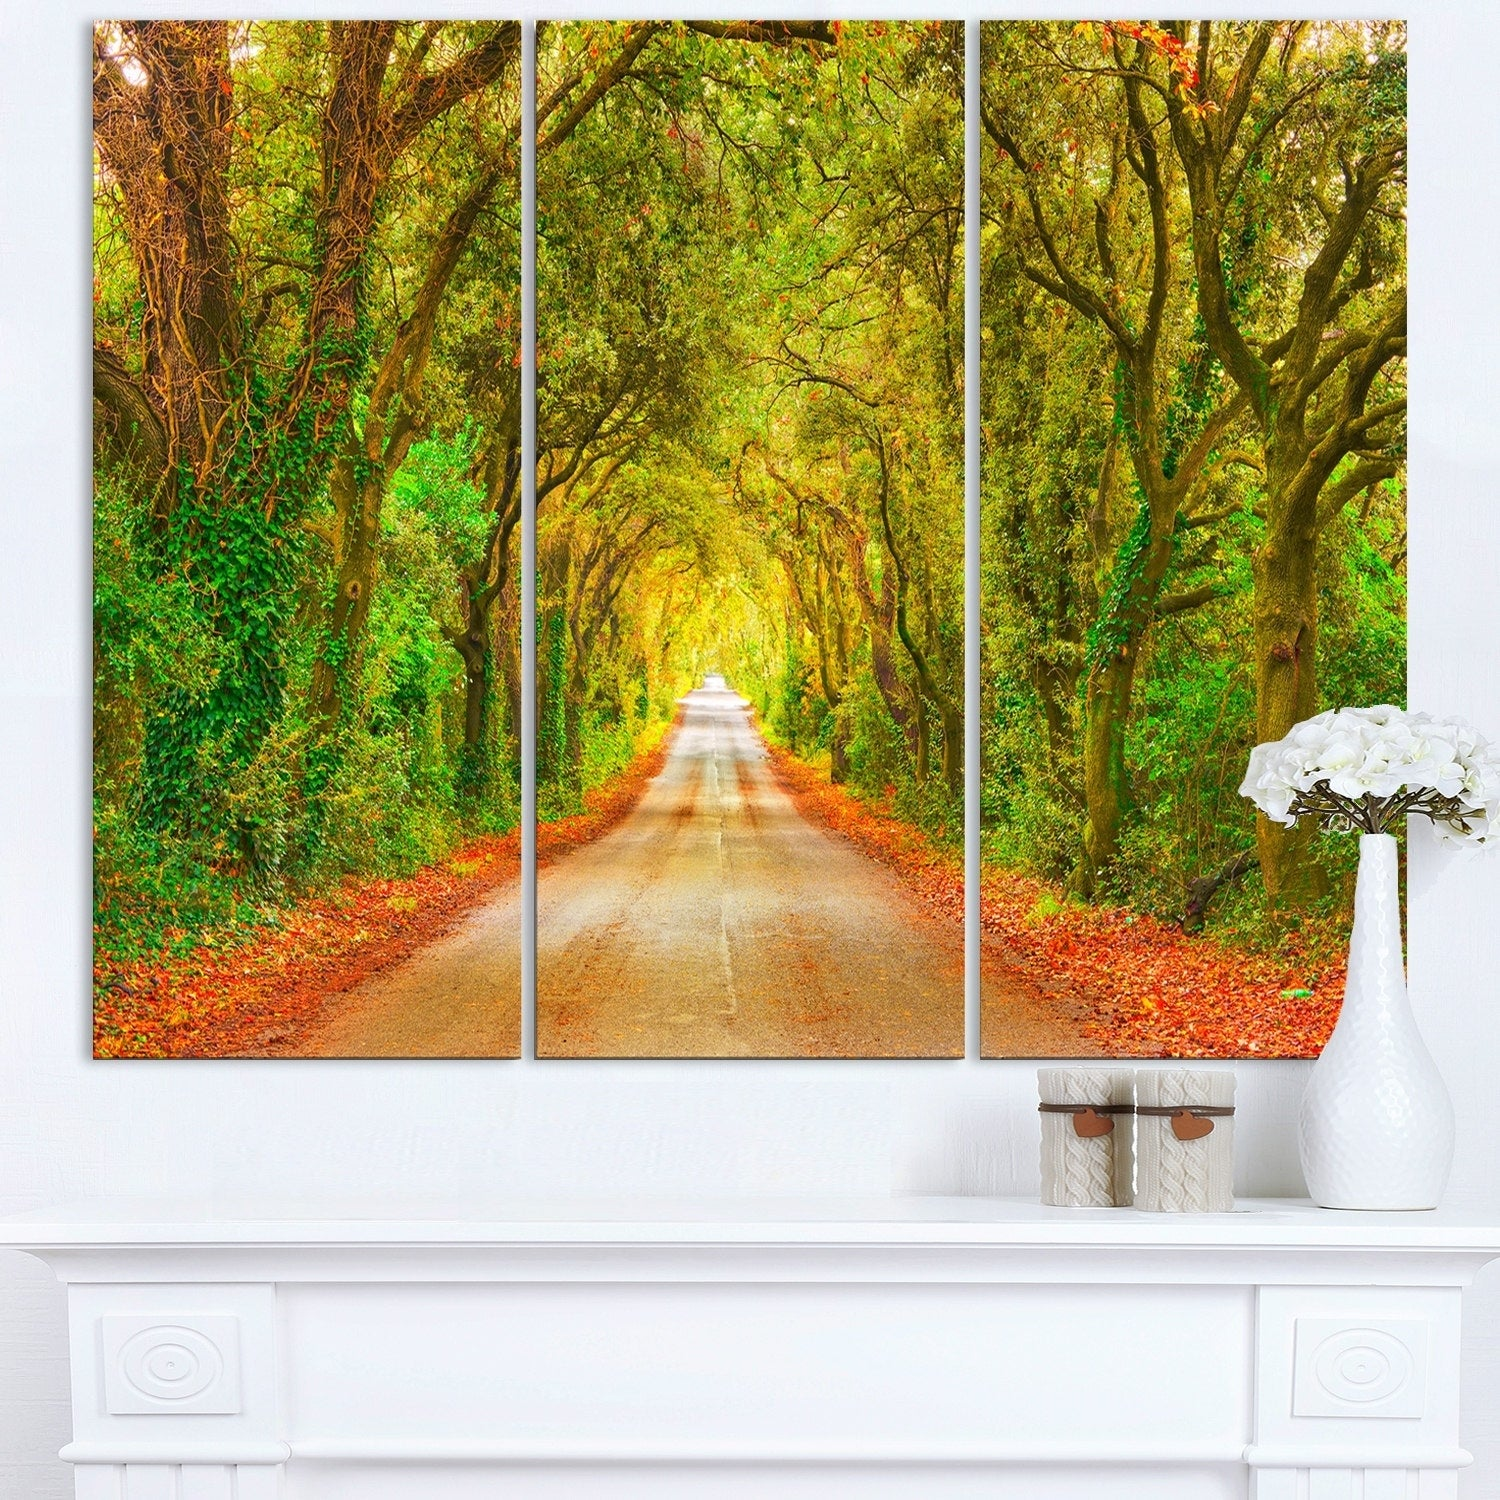 Shop Fall Greenery and Road Straight Ahead - Oversized Forest Glossy ...